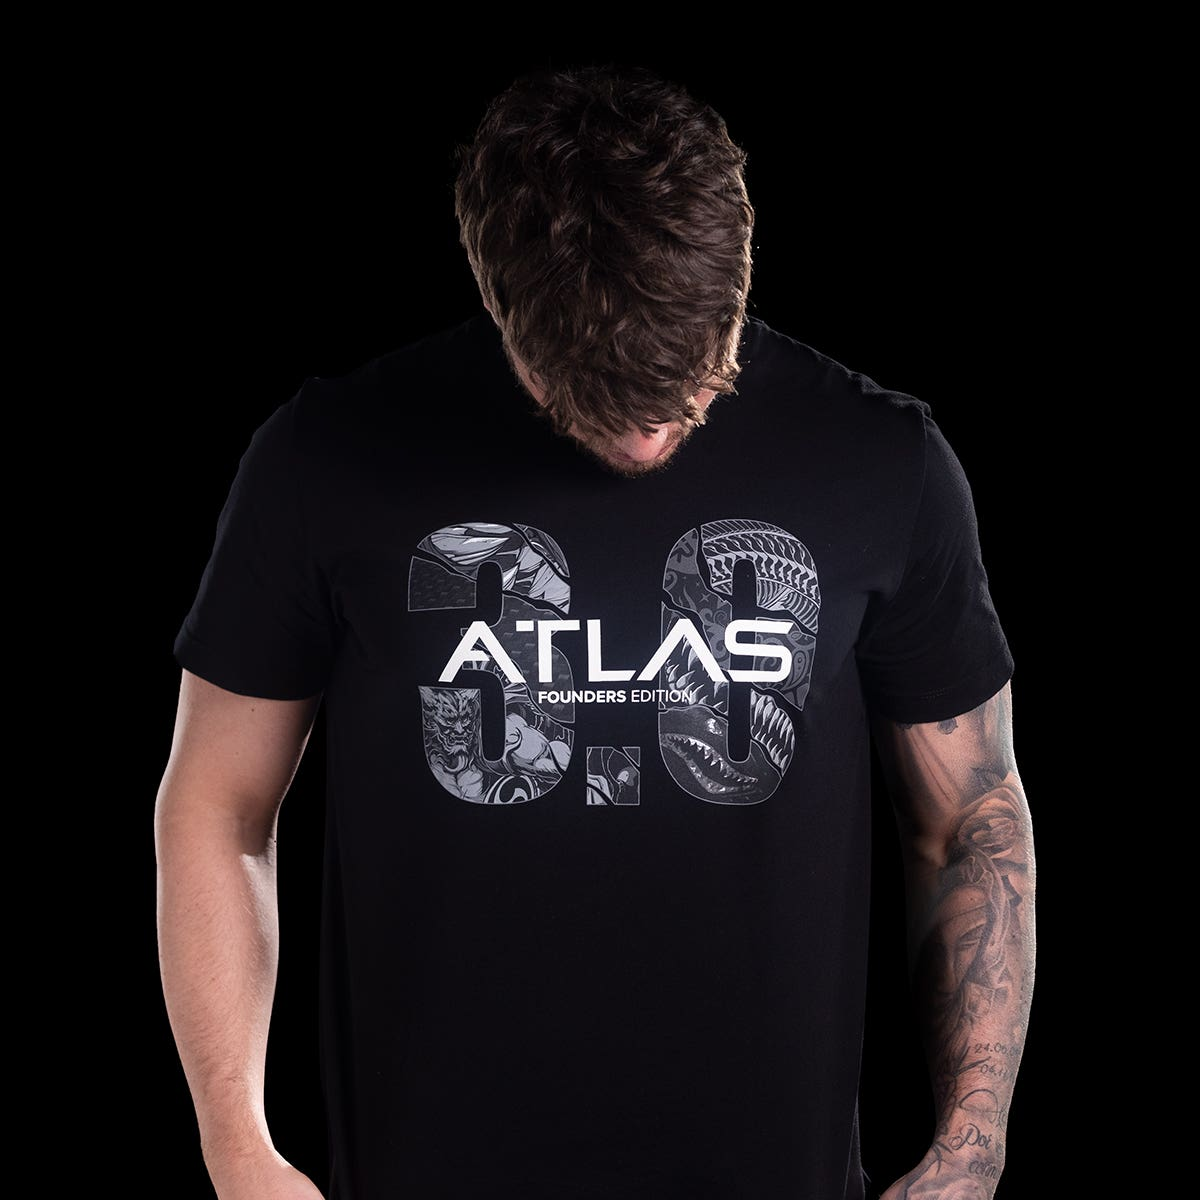 Atlas 3.0 Founders Tee